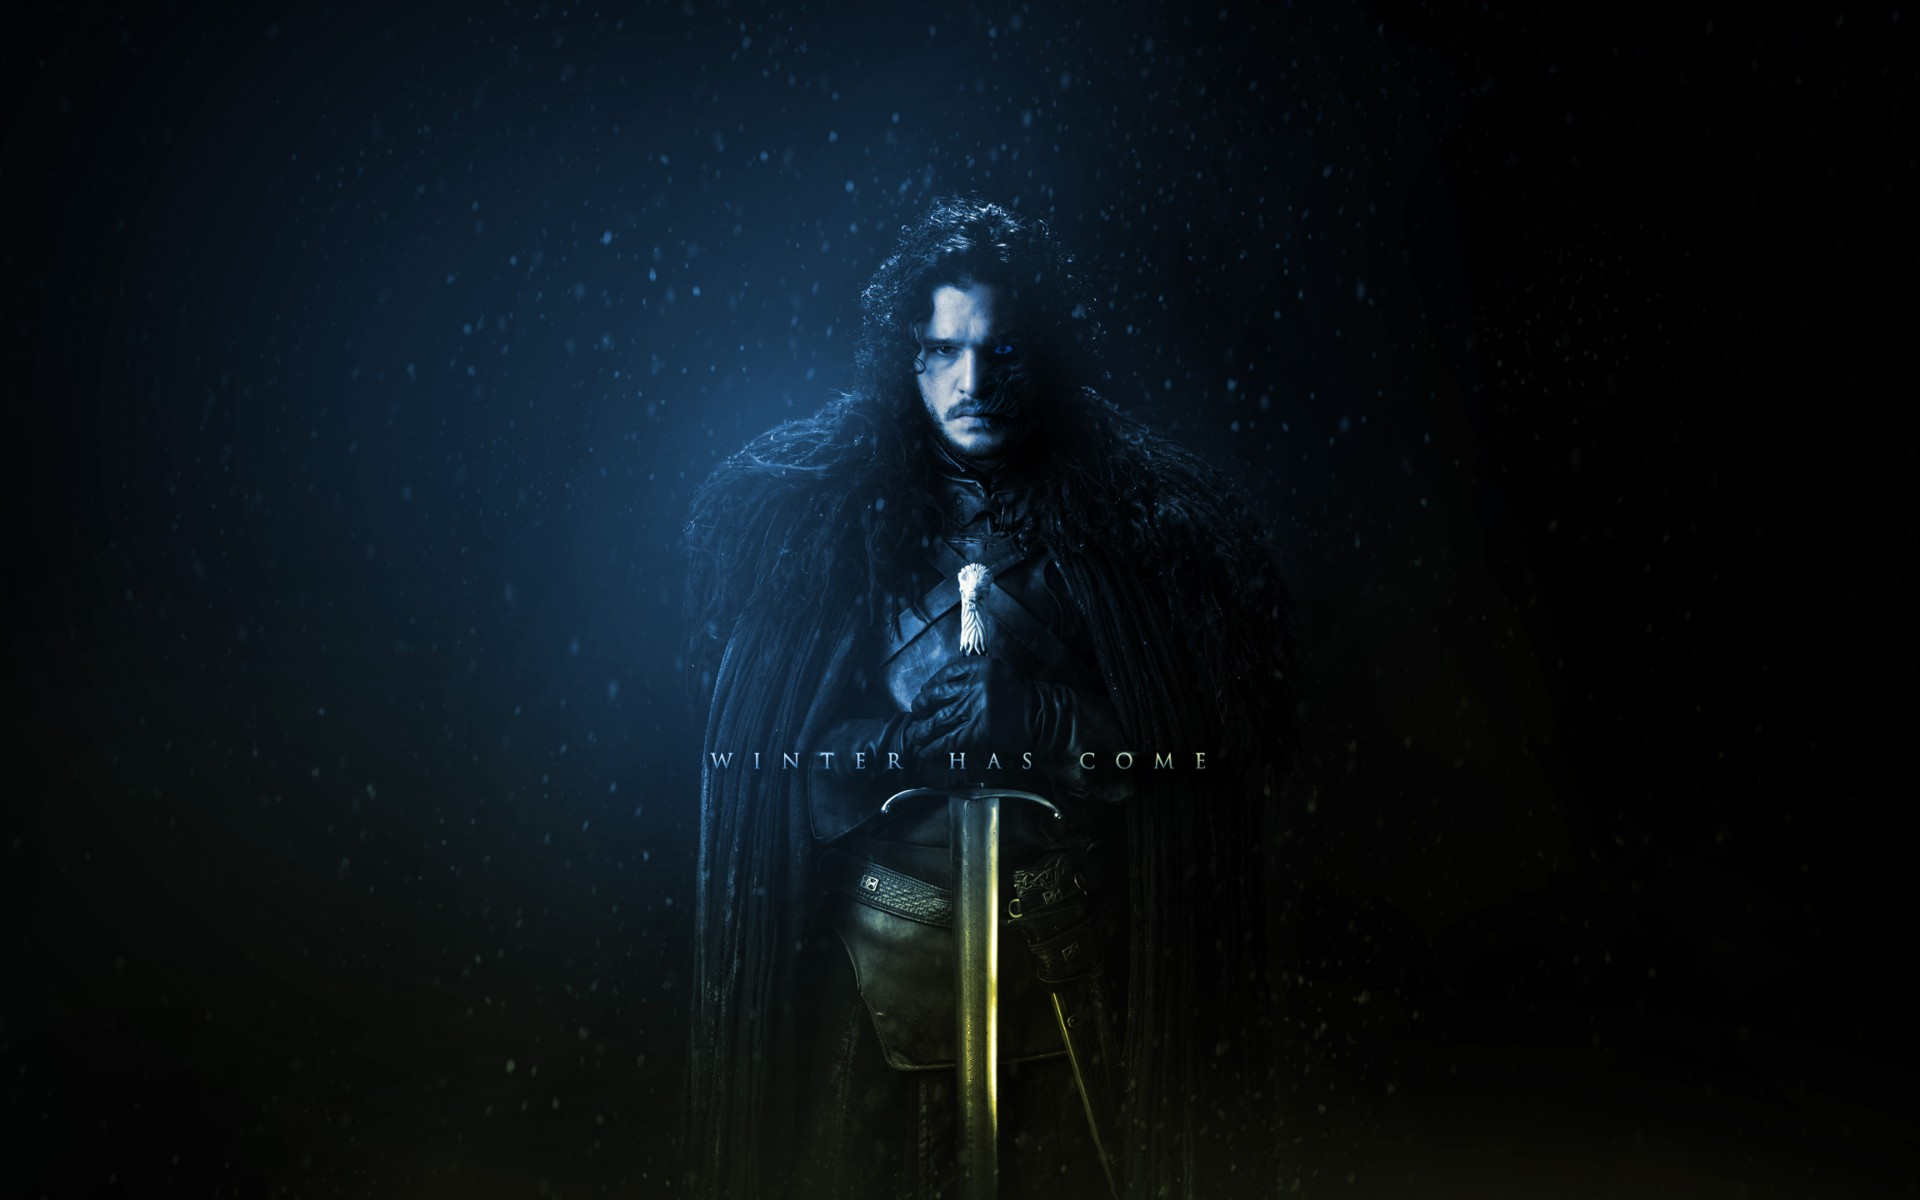 Download-high-quality-Game-of-Thrones-Season-Jon-Snow-Kit-Harington-Winter-has-come-HD-wallpaper-wp380195